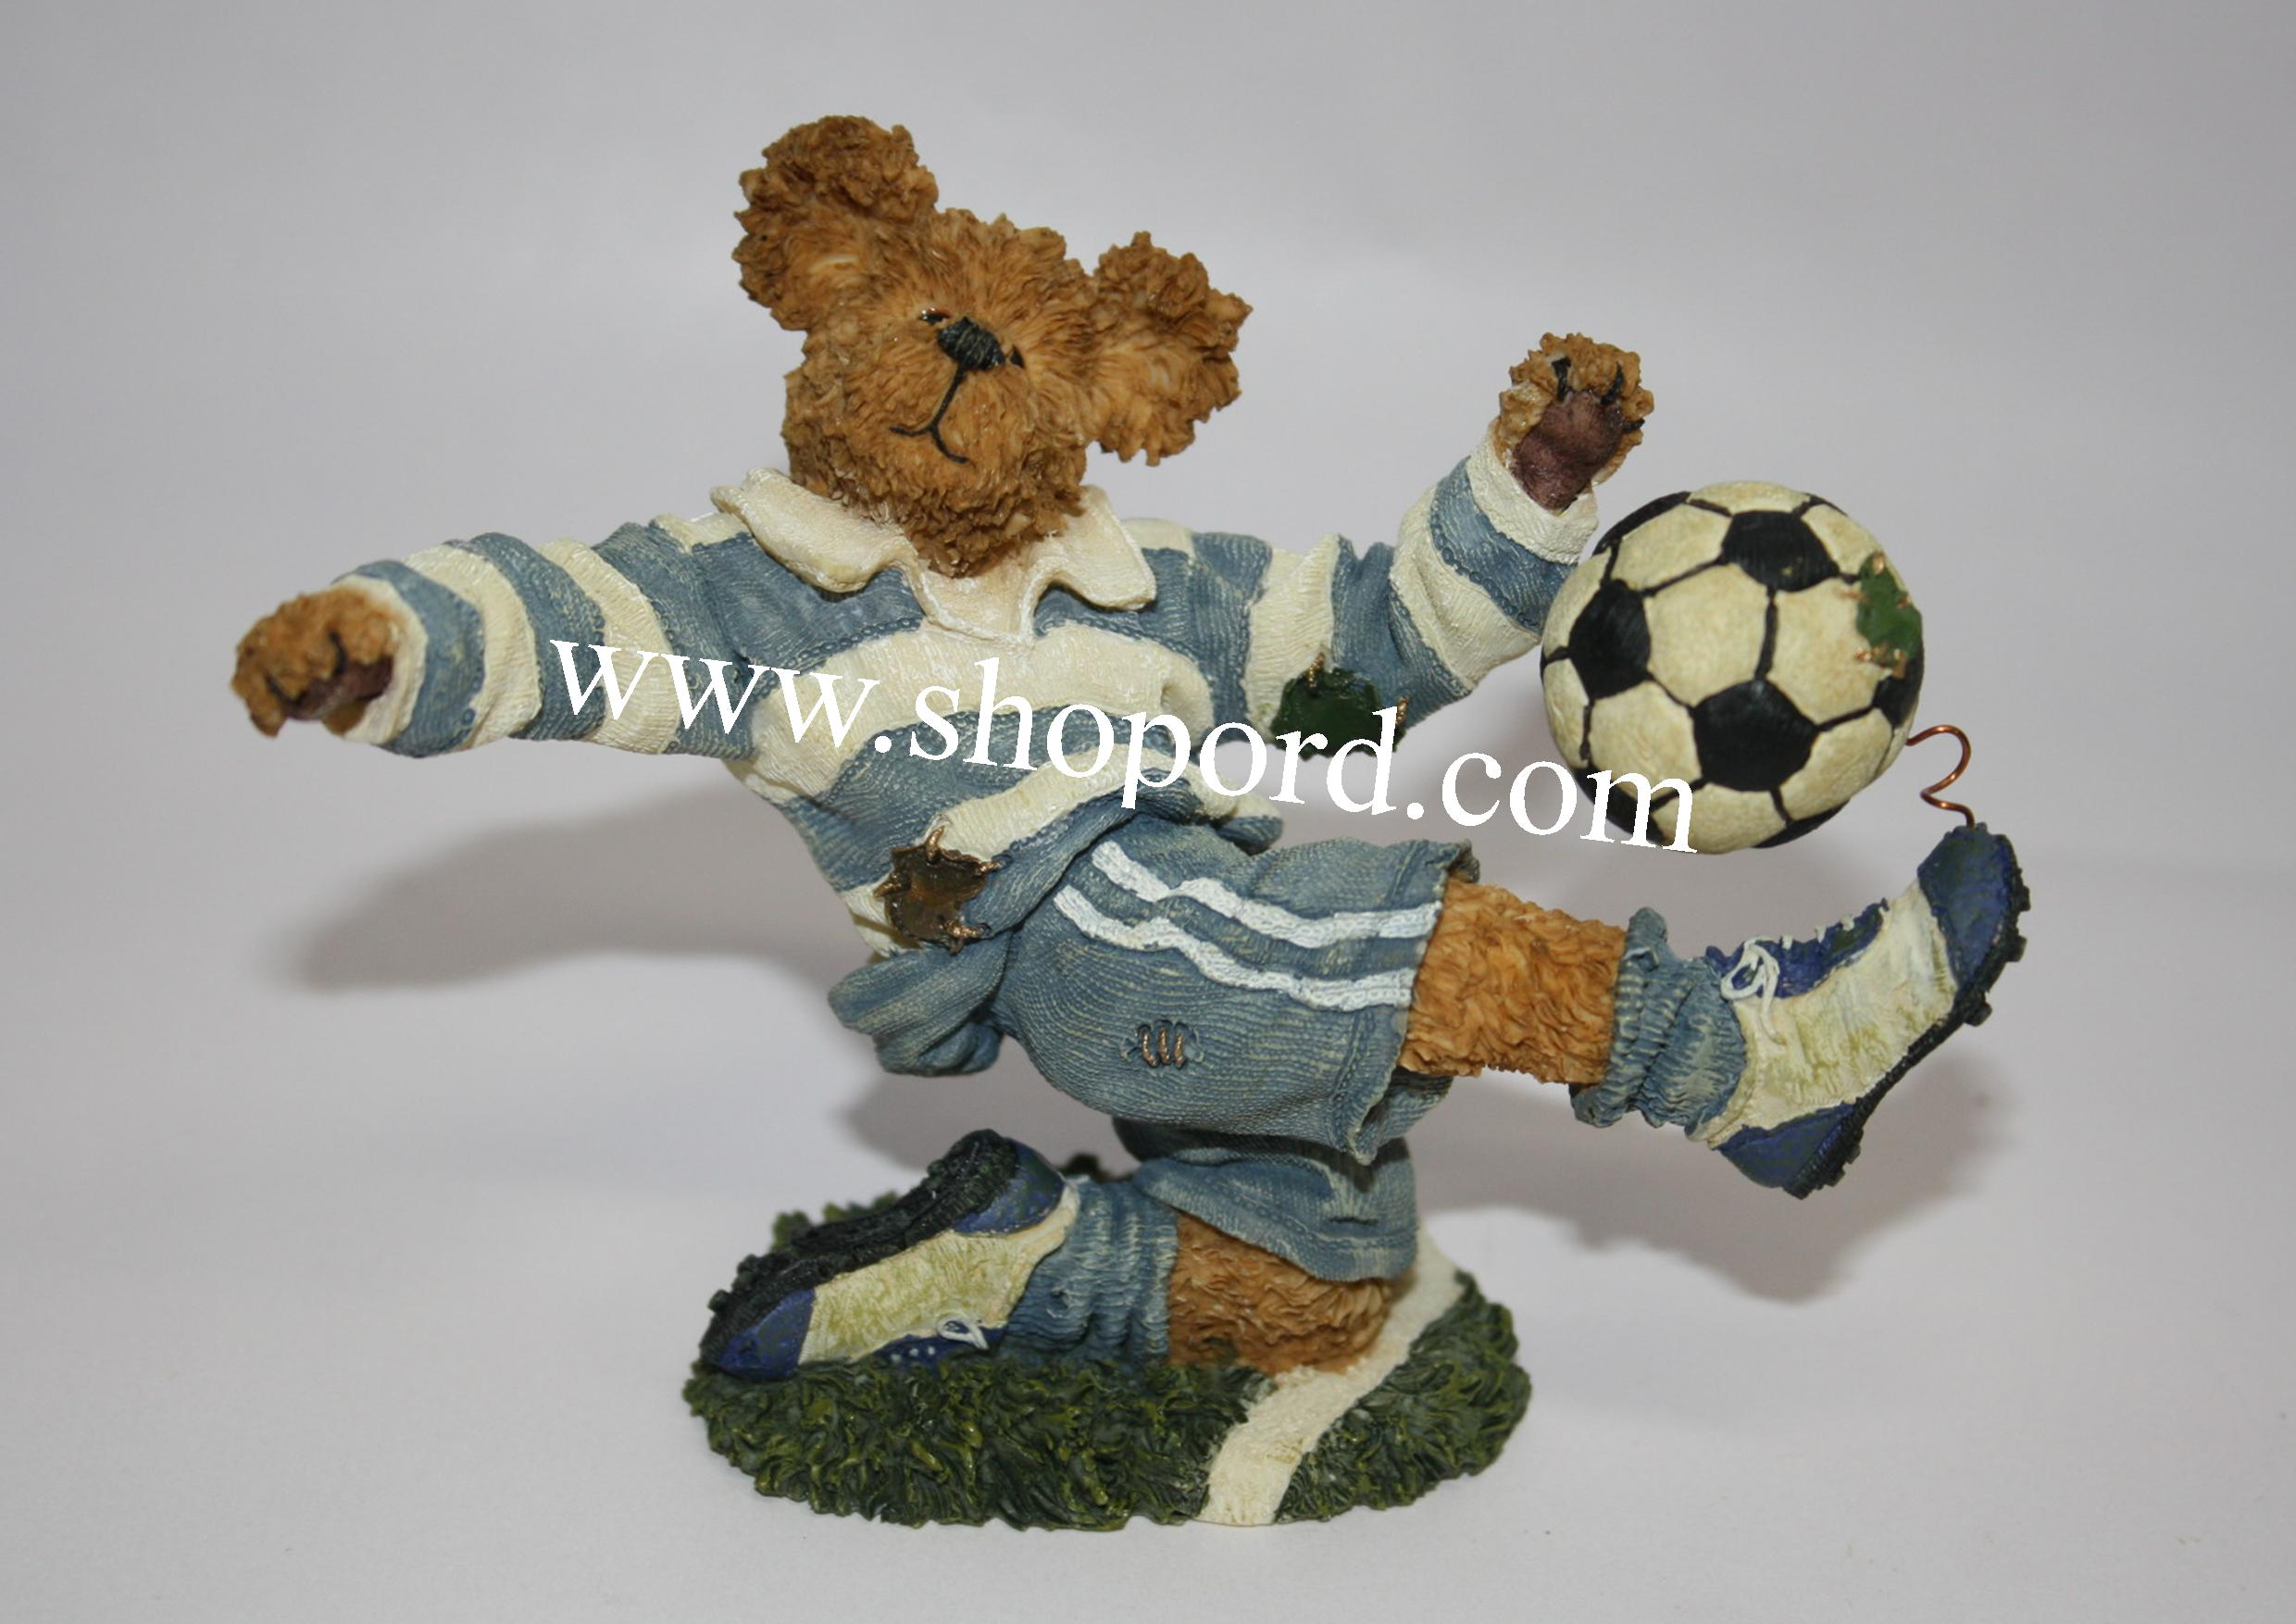 Boyds The Bearstone Collection - Chris Striker (Score - Soccer) #228397